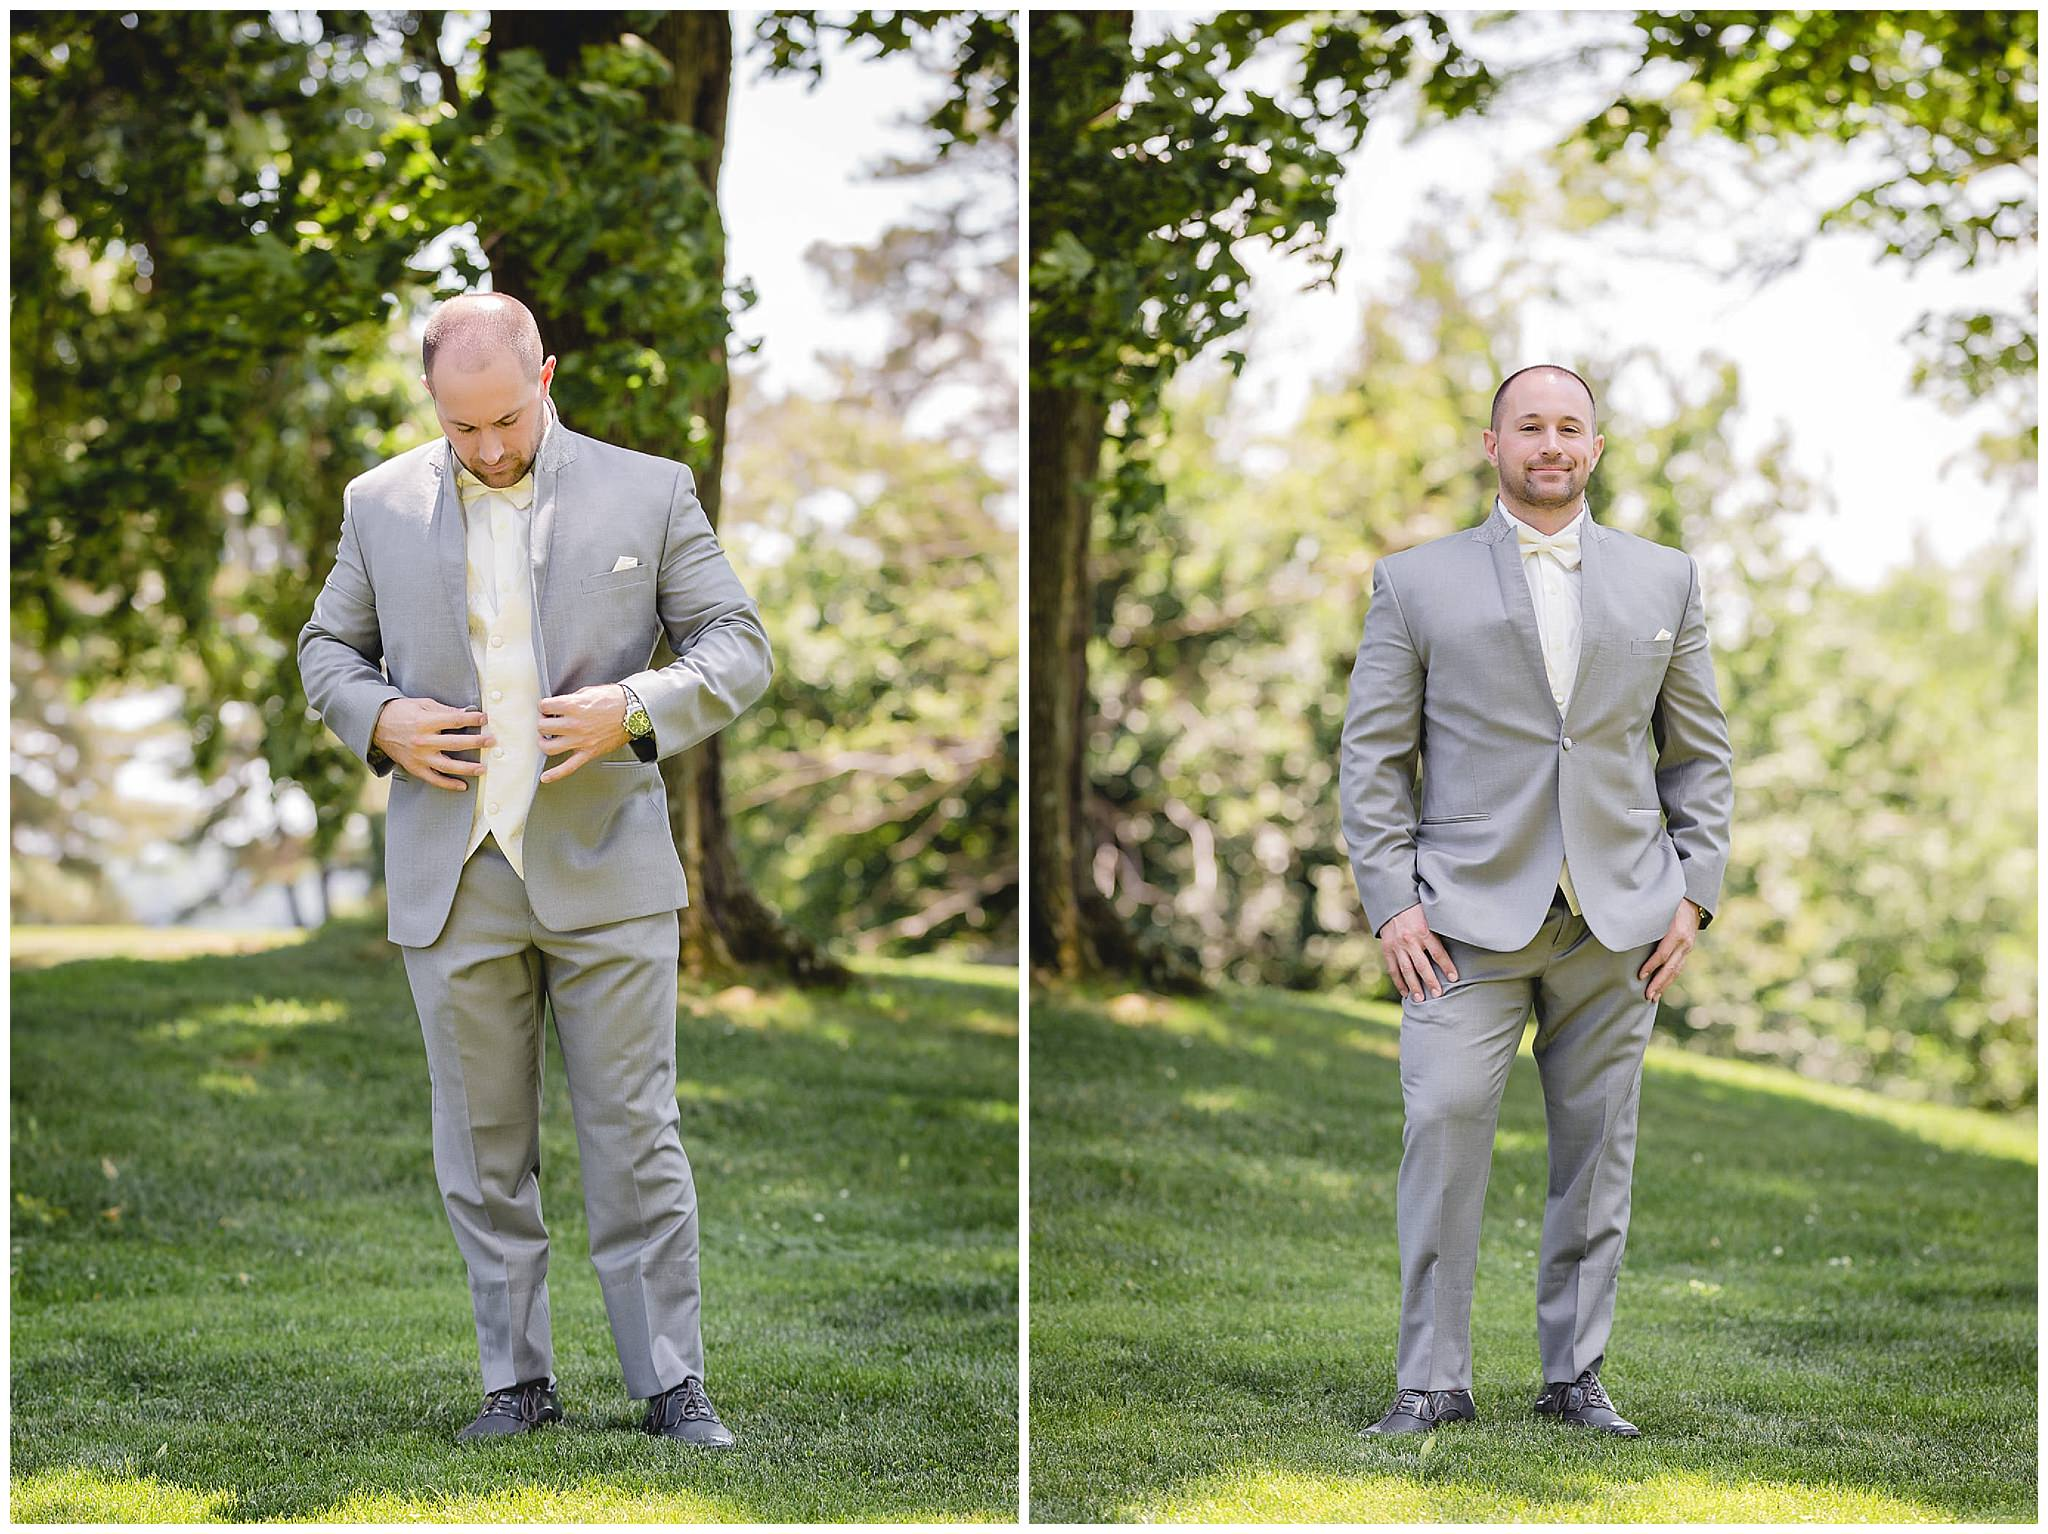 Groom puts on his jacket and poses for a portrait